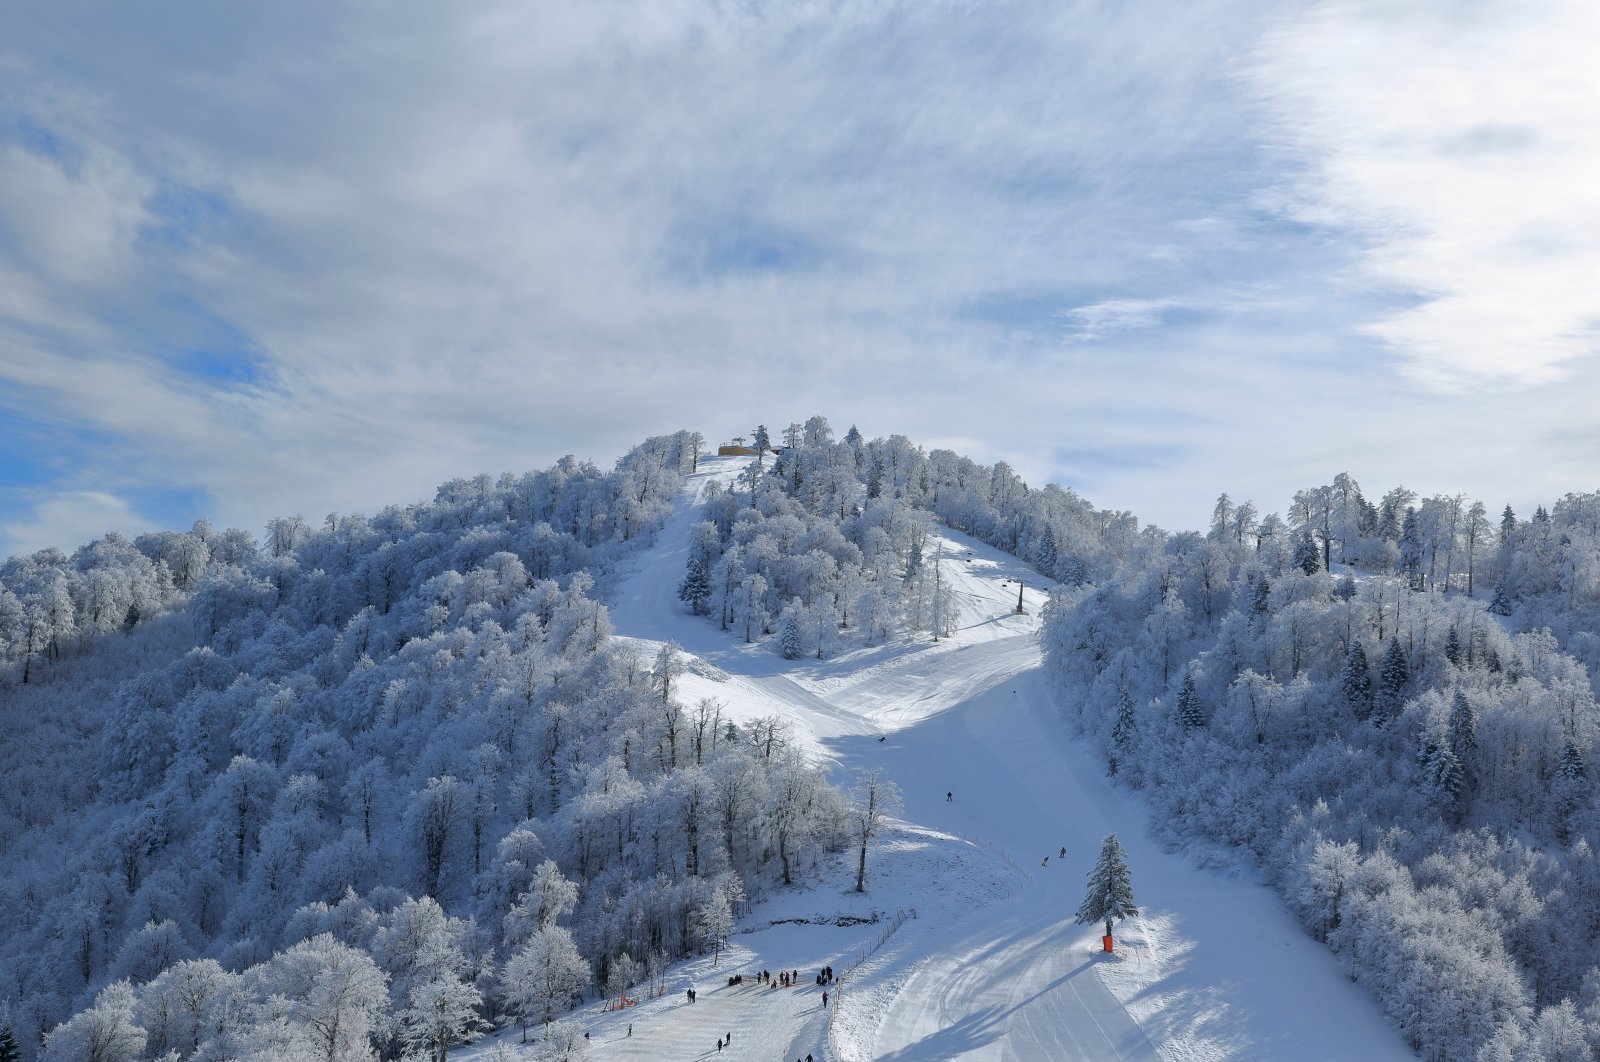 A general view of Kartepe ski center in Kocaeli province, northwestern Turkey. (Shutterstock Photo)